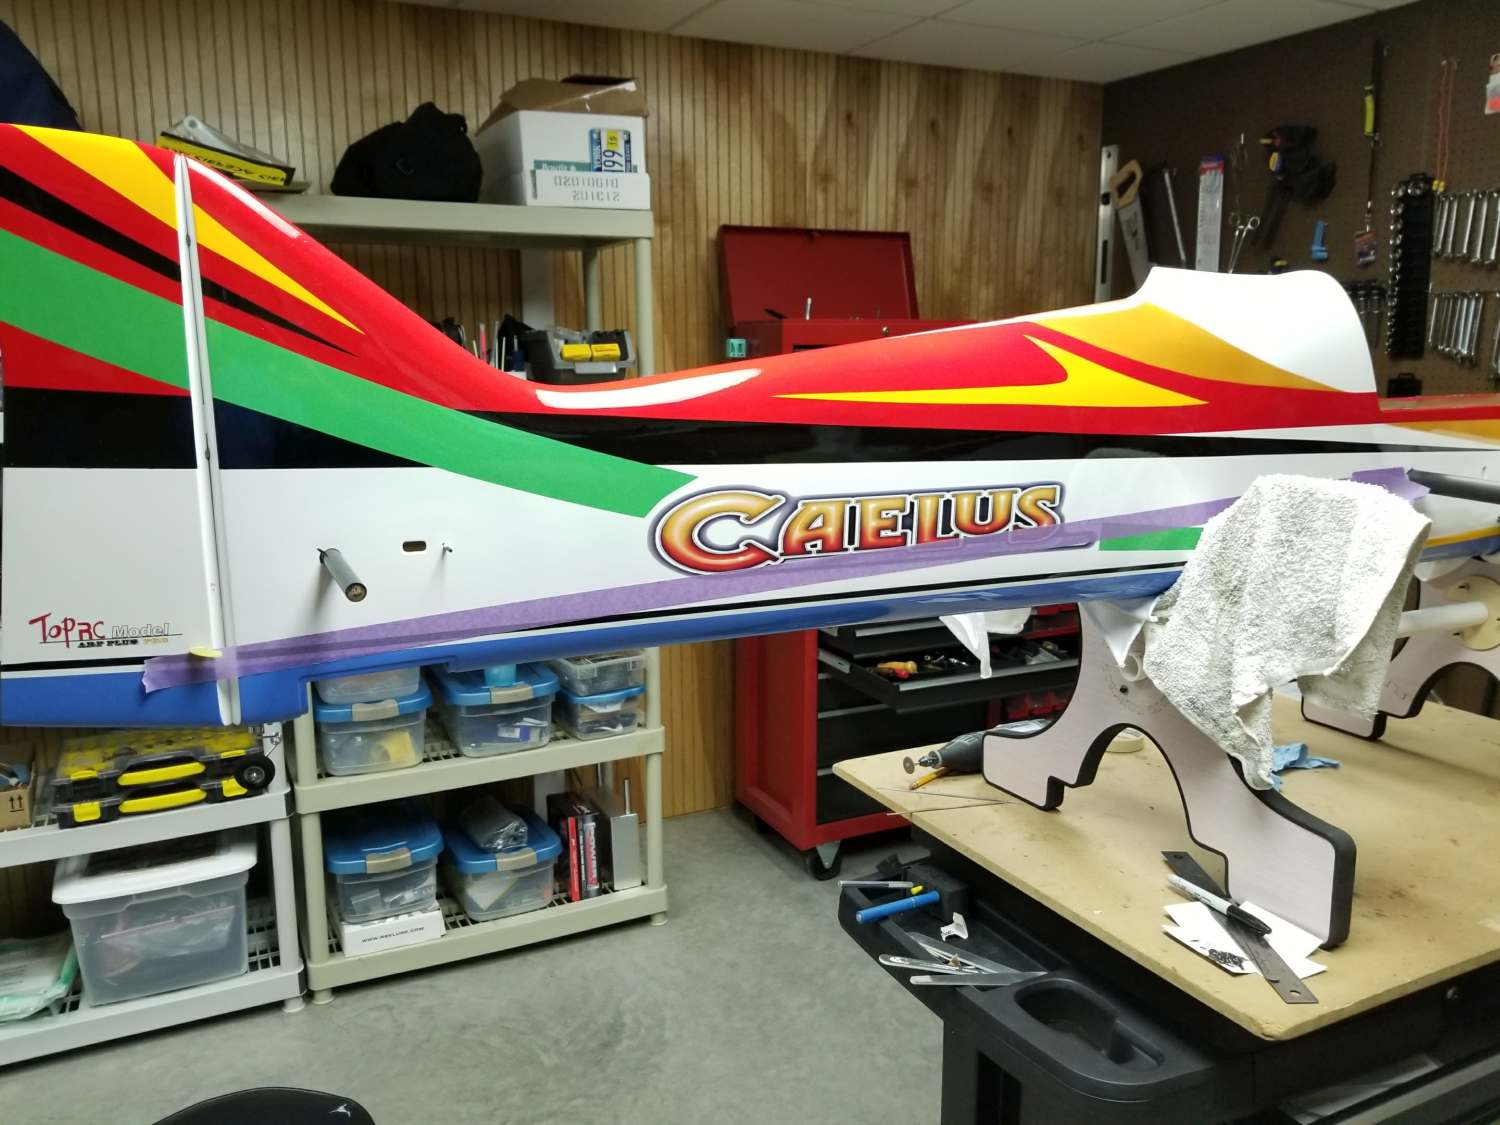 Click image for larger version  Name:Caelus Rudder.jpg Views:100 Size:178.3 KB ID:2214329